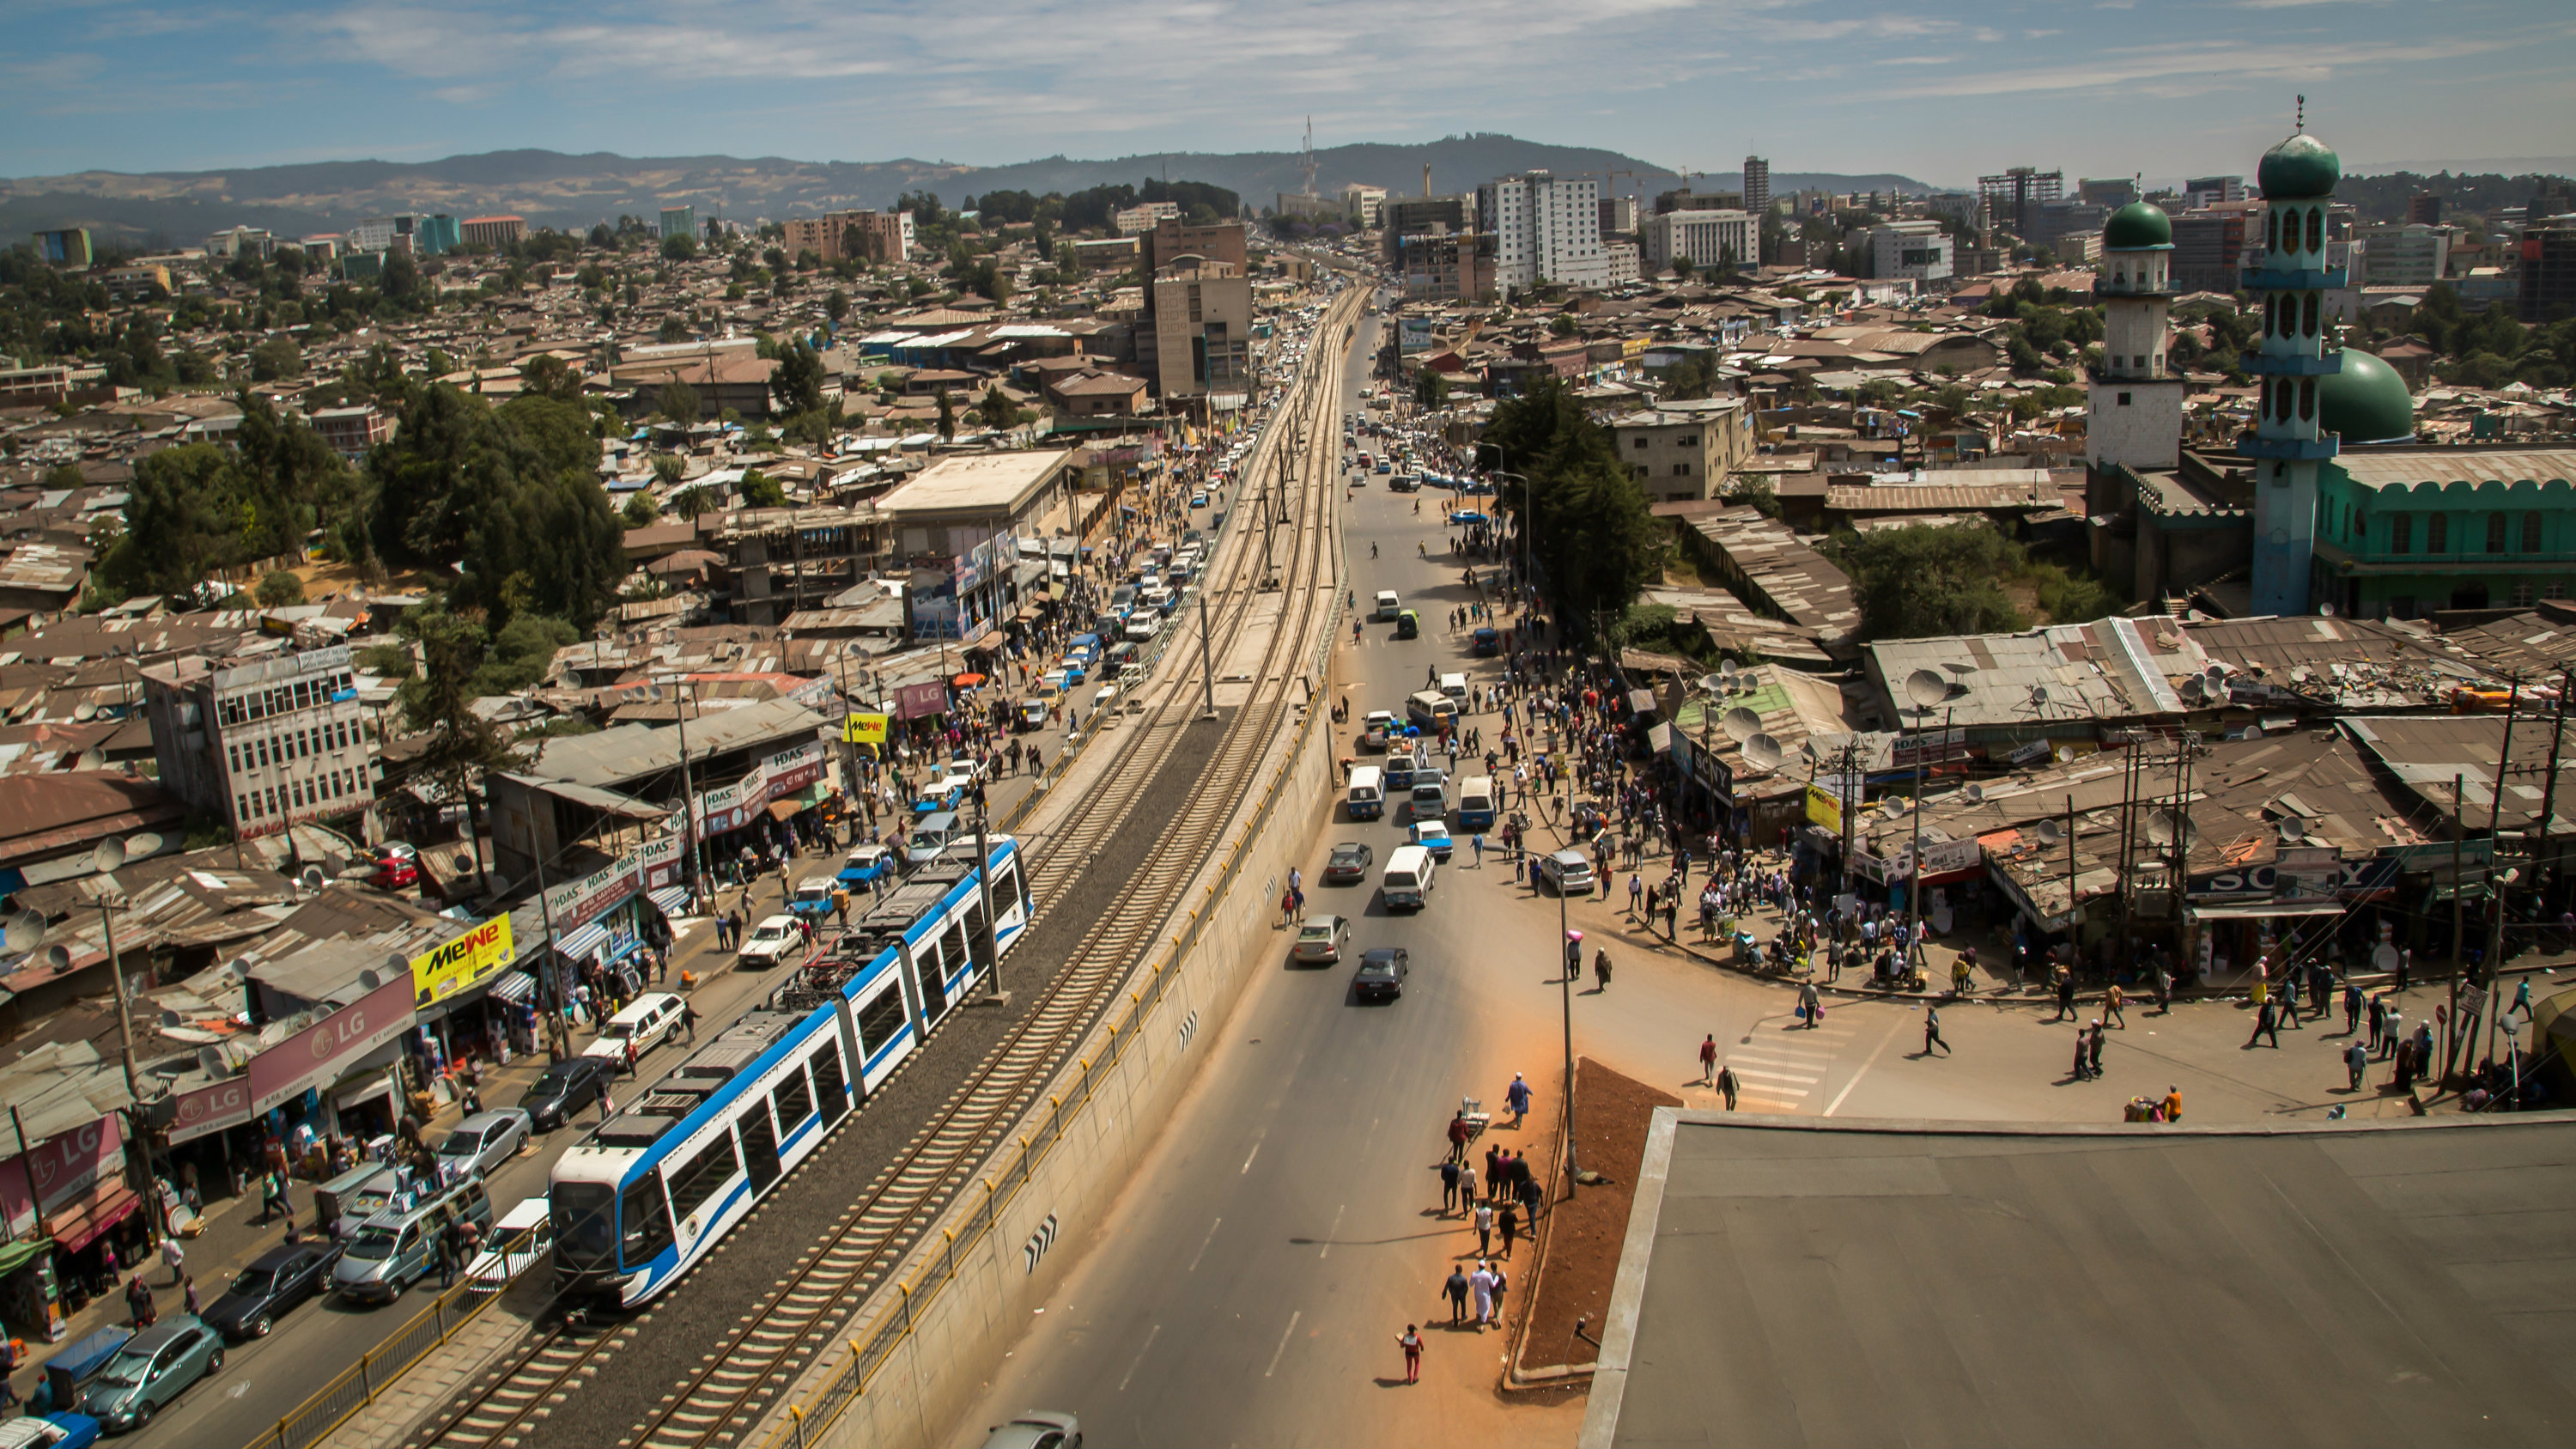 This image is released on Friday, Dec. 2, 2016, as it is announced that the city of Addis Ababa is a winner of the C40 Awards 2016 for its efforts to tackle climate change, in the Transportation Category. The Addis Ababa Light Rail Transit (LRT), the first of its kind in Sub-Saharan Africa, is changing the face of public transport in a city where almost 60% of the population walks to their destination. The LRT transports 60,000 passengers per hour and is helping to cut the city's greenhouse gas emissions. An Addis Ababa Light Rail Tram passes through Ethiopia's largest business district Merakto on Friday Nov. 11, 2016. For full release on the awards and their recipients go to: http://www.apcontentservices.com/multimedia-newsroom/c40-awards-the-11-best-cities-for-addressing-climate-change